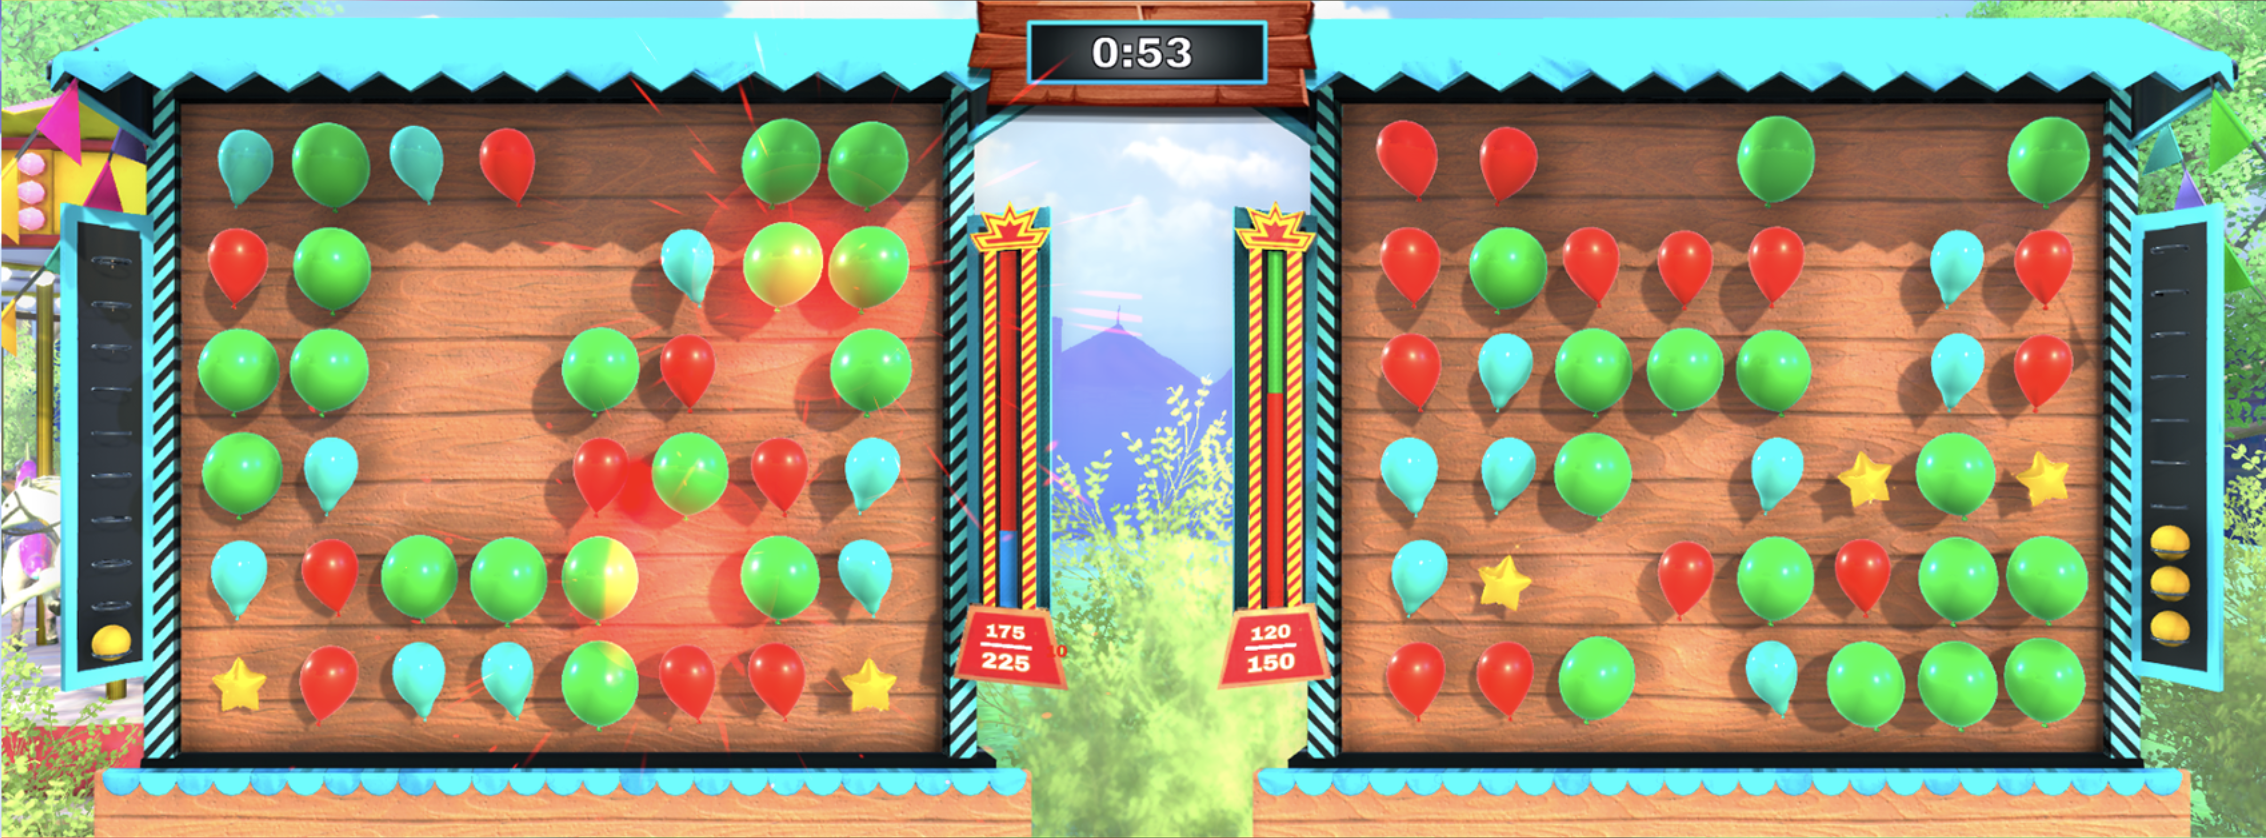 Balloon pop gameplay picture 2 players